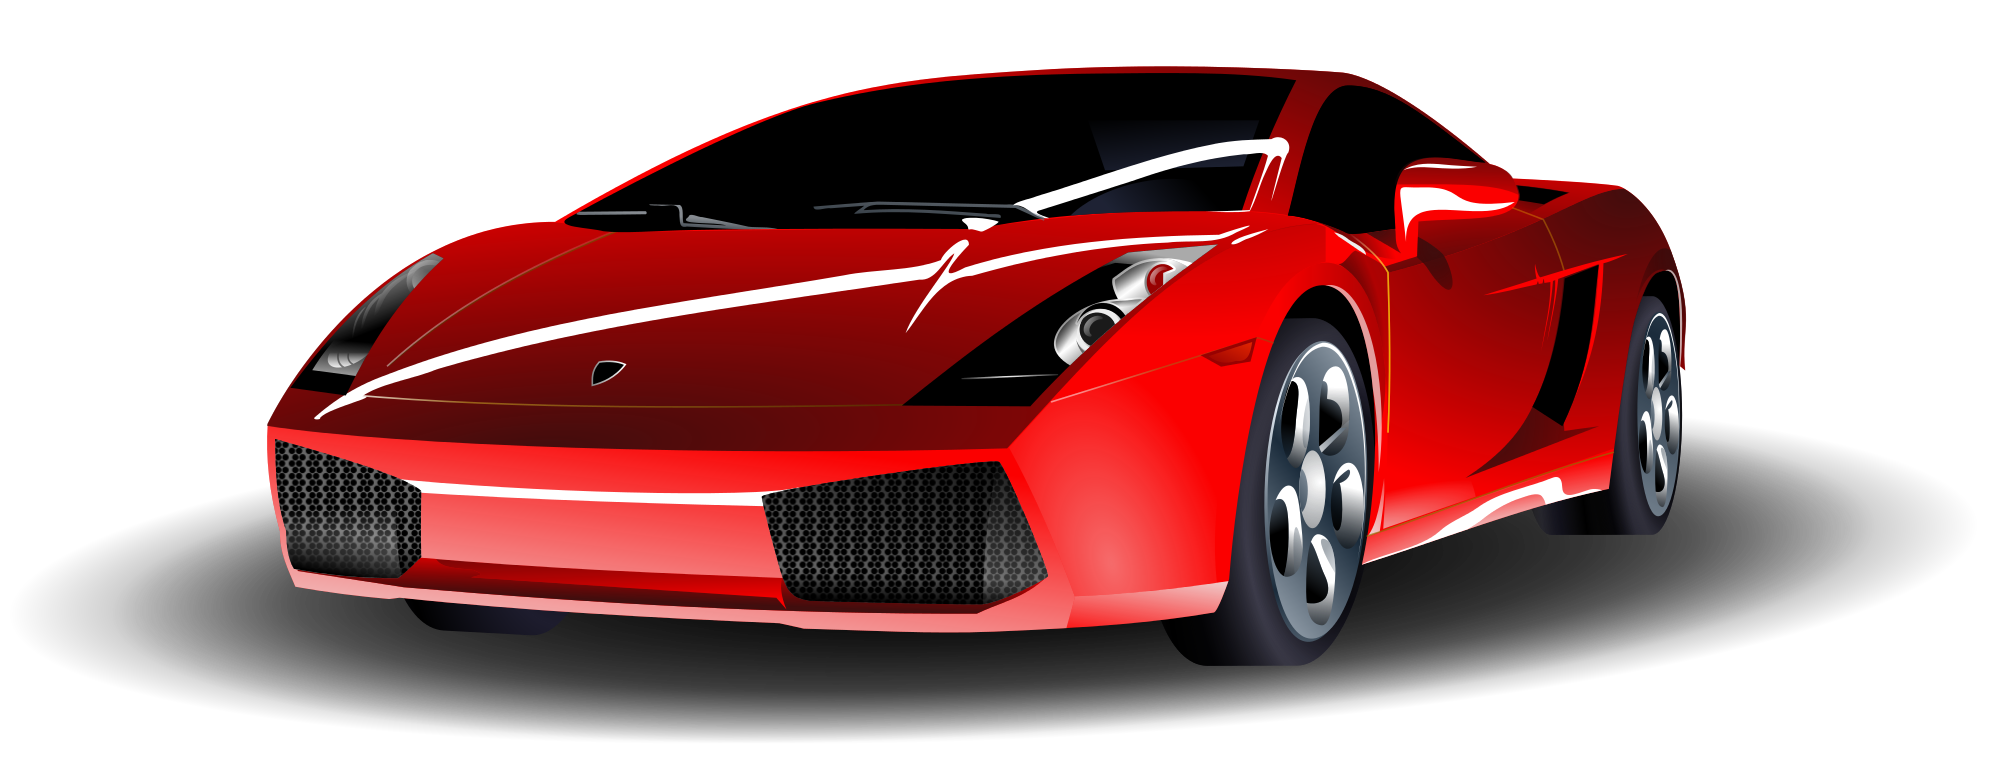 Lambo transparent cartoon. File red lamborghini svg